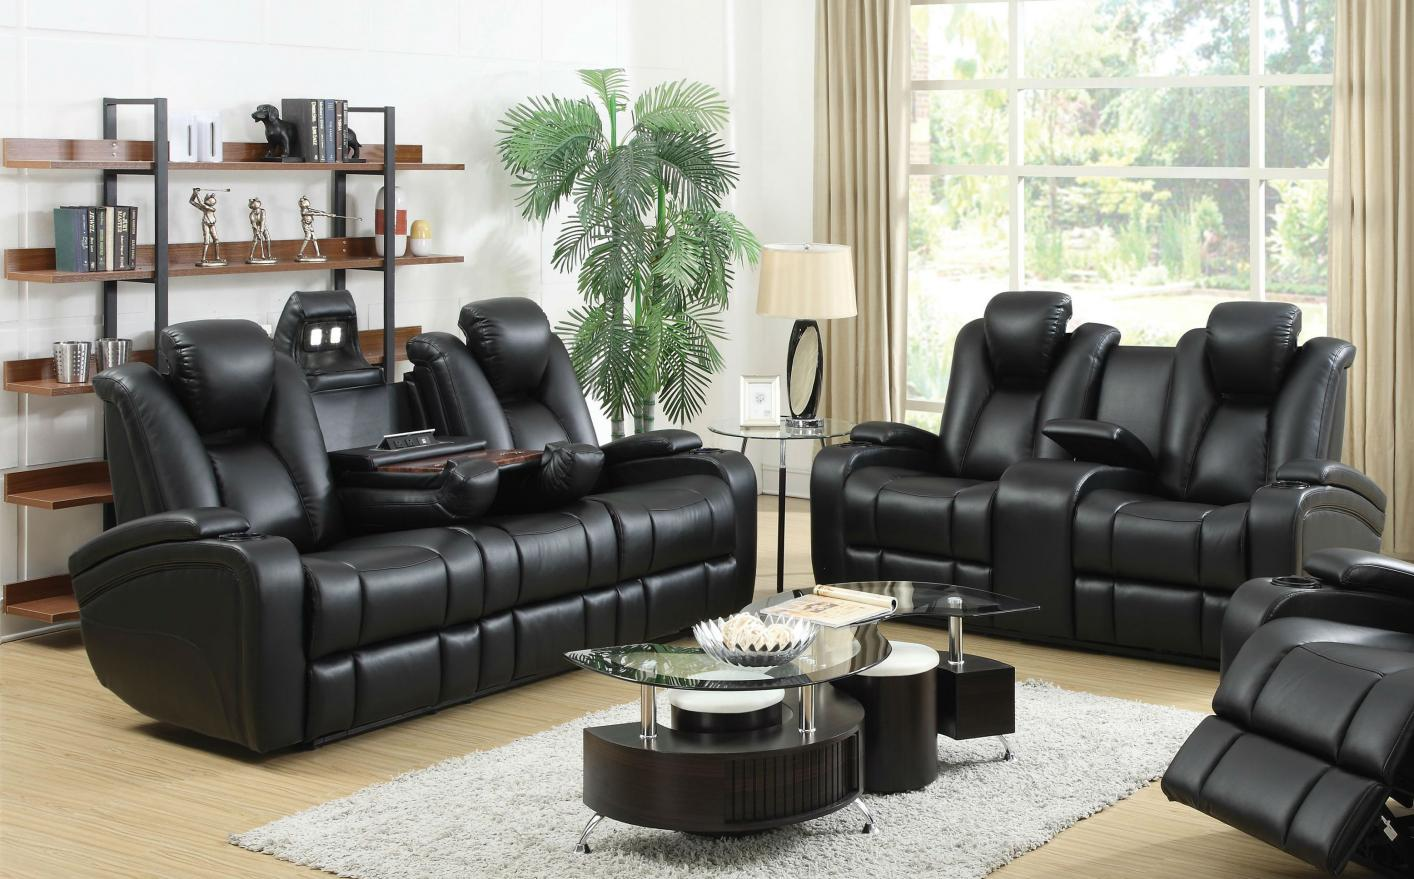 Coaster 601741p 601742p black leather power reclining sofa Power reclining sofas and loveseats